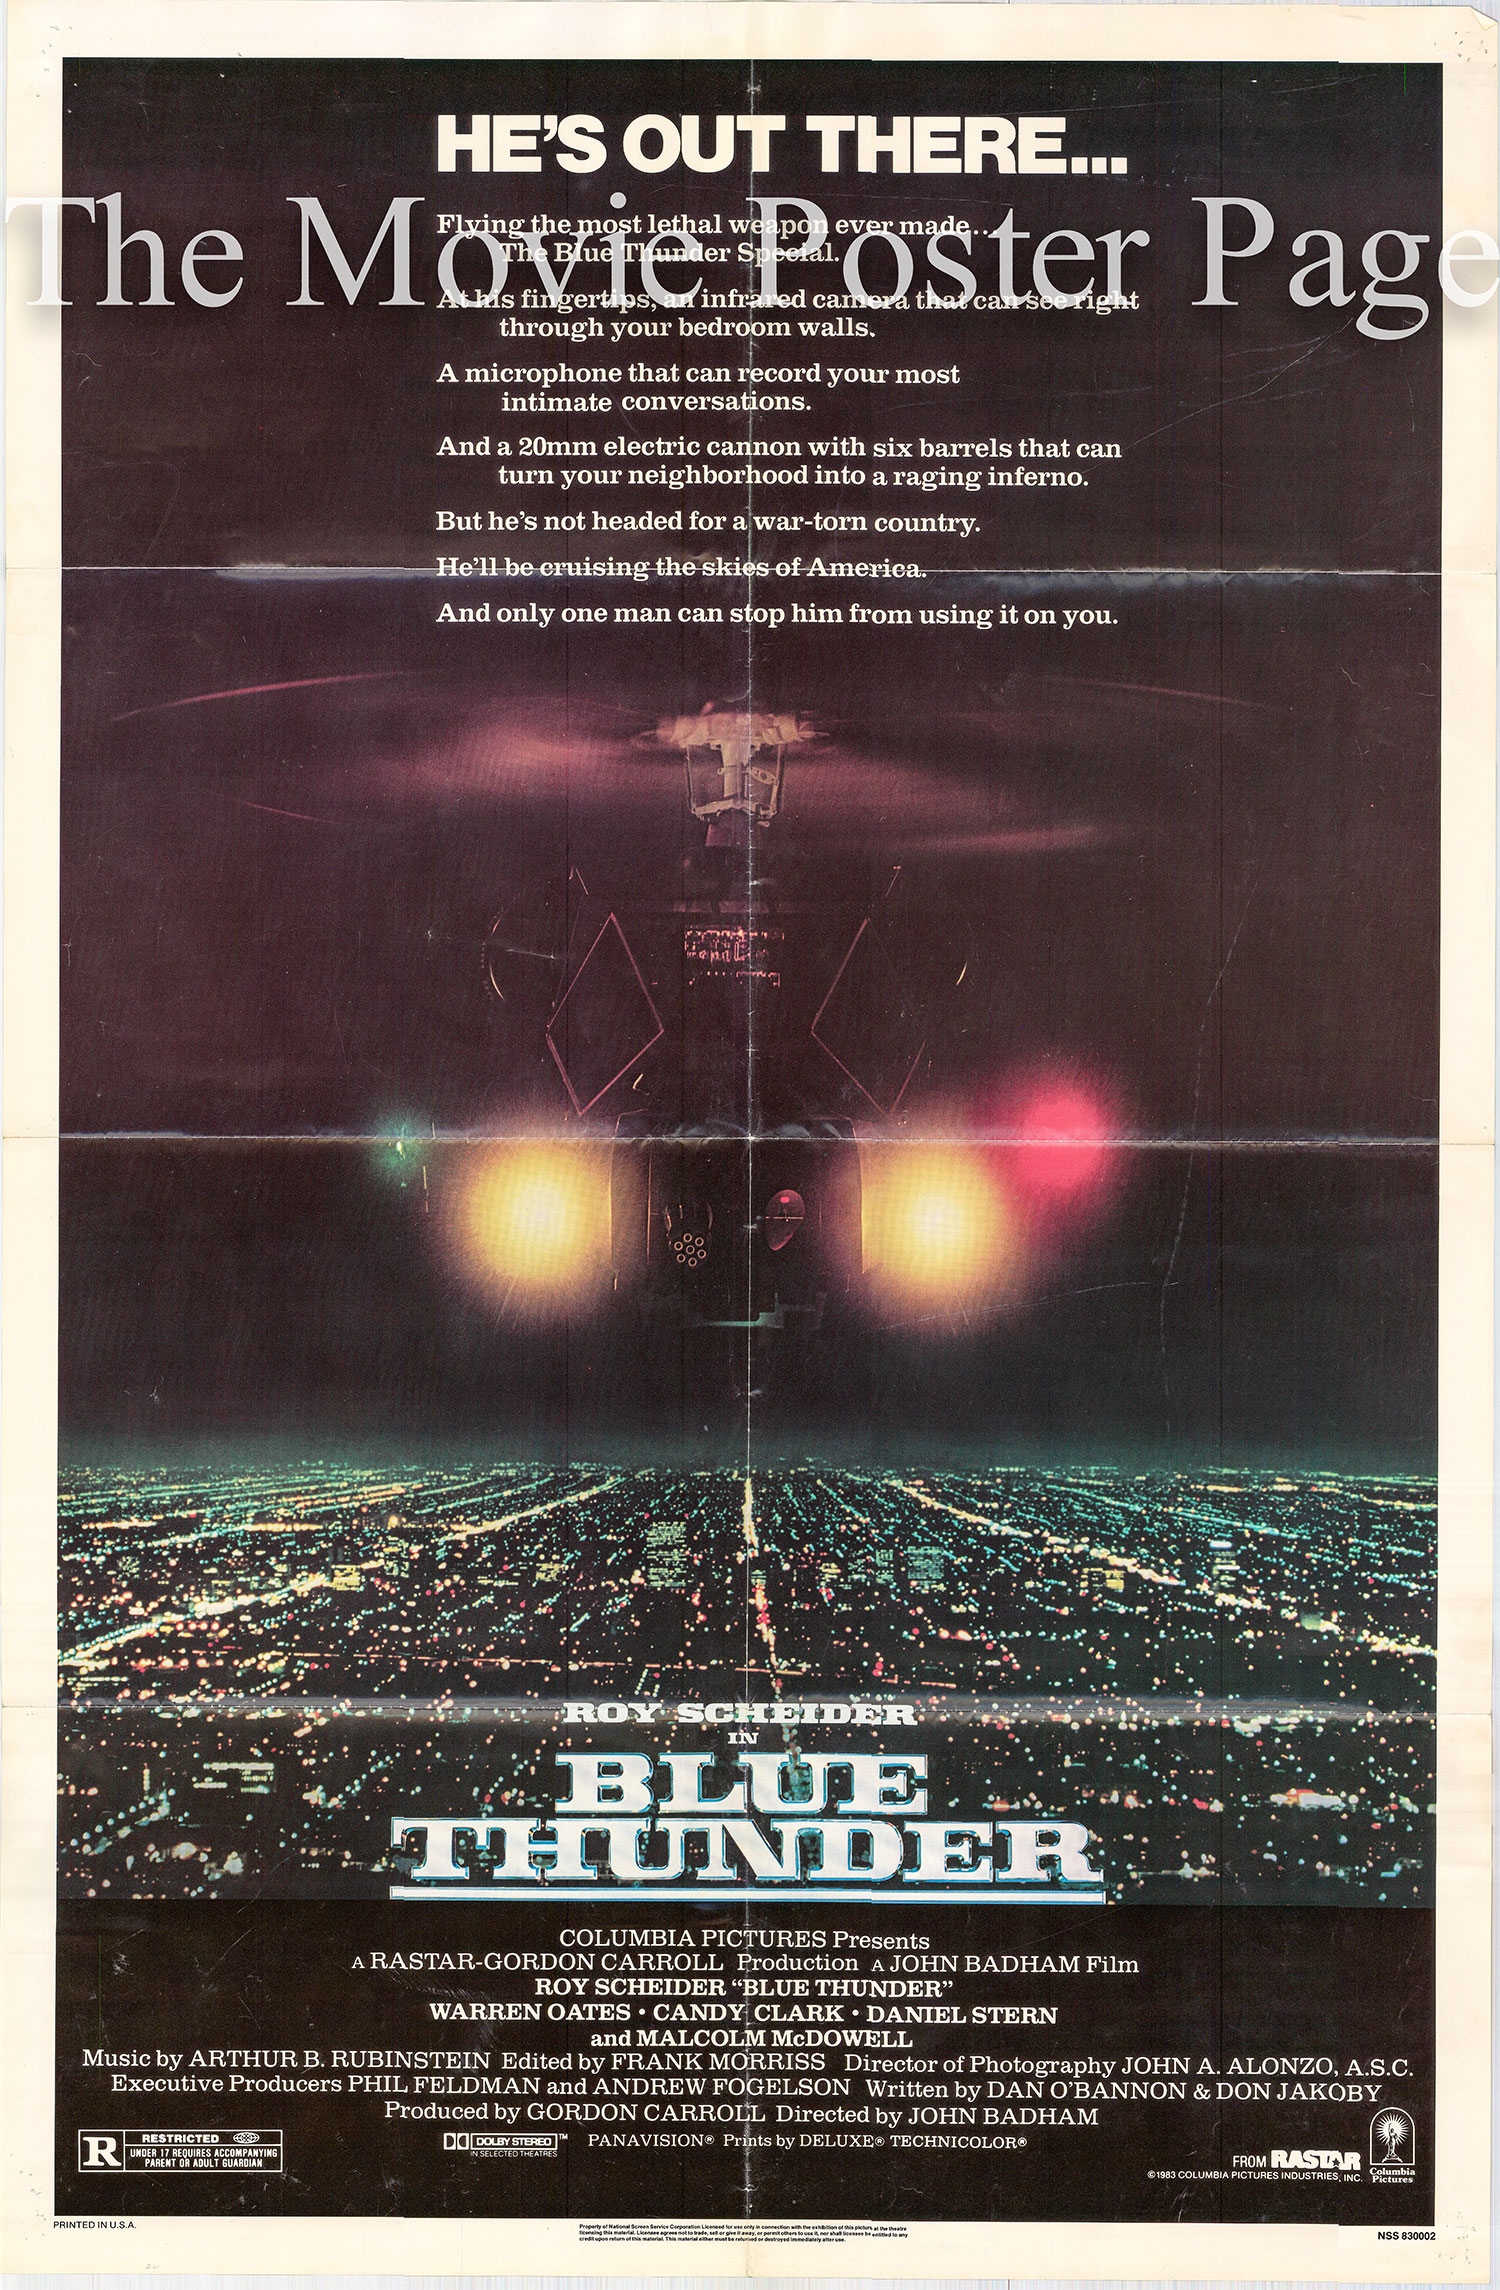 Pictured is a US promotional poster for the 1983 John Badham film Blue Thunder starring Roy Scheider.